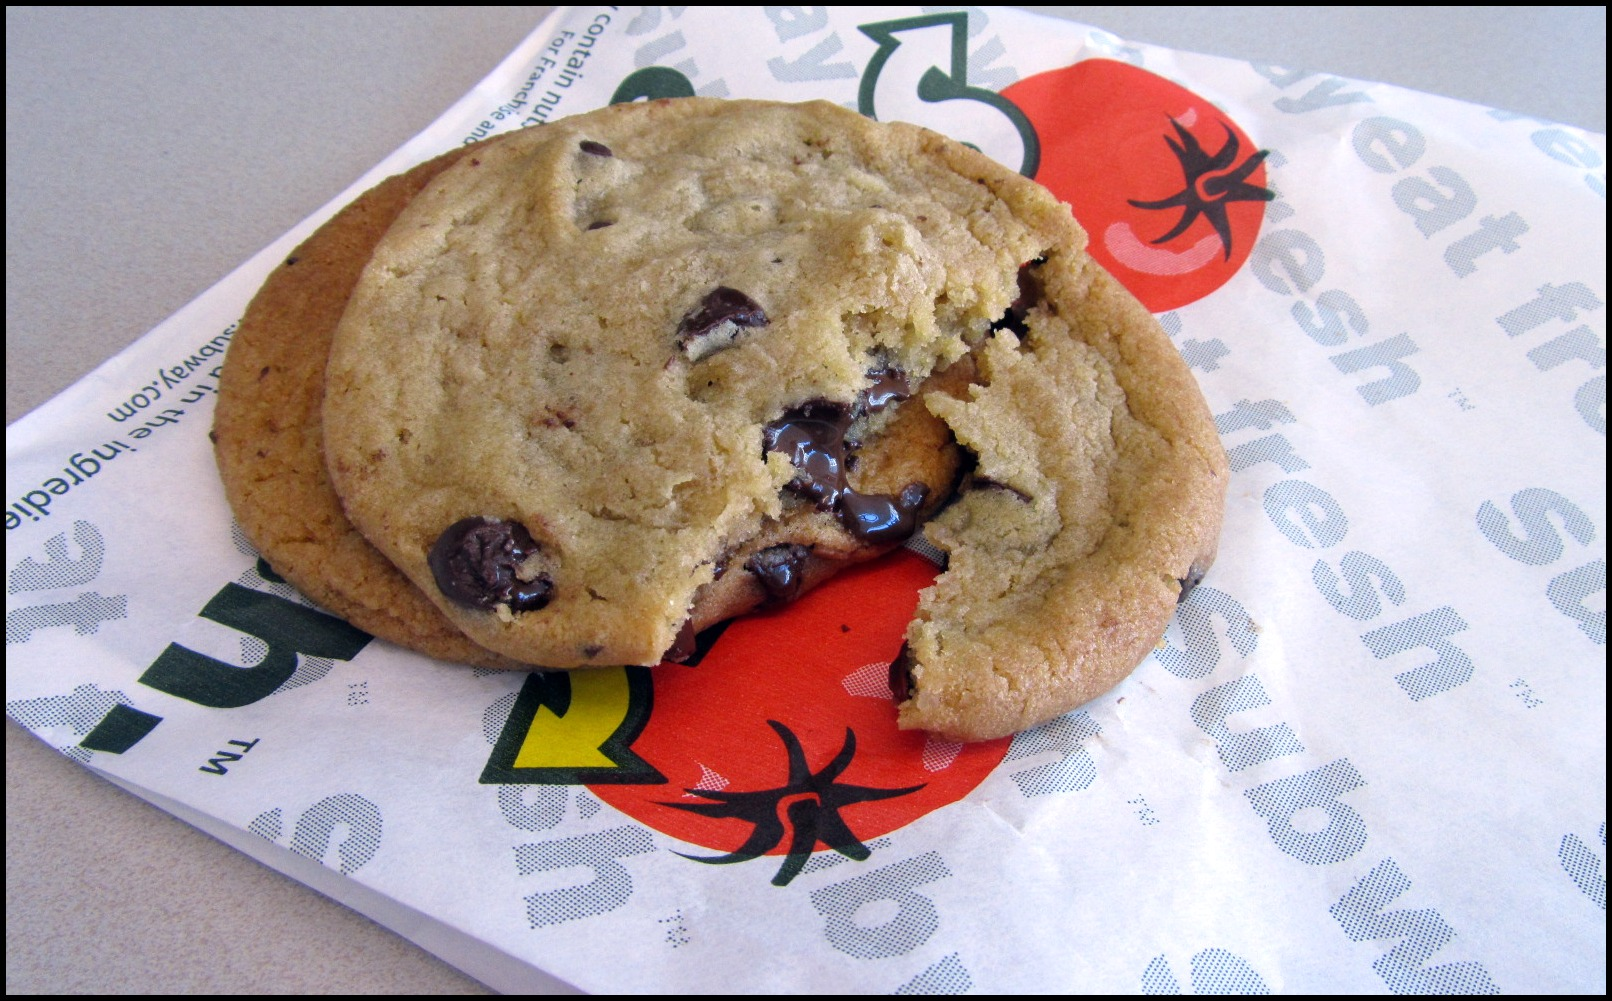 Carbs In  Betty Crocker Oatmeal Chocolate Chip Cookie